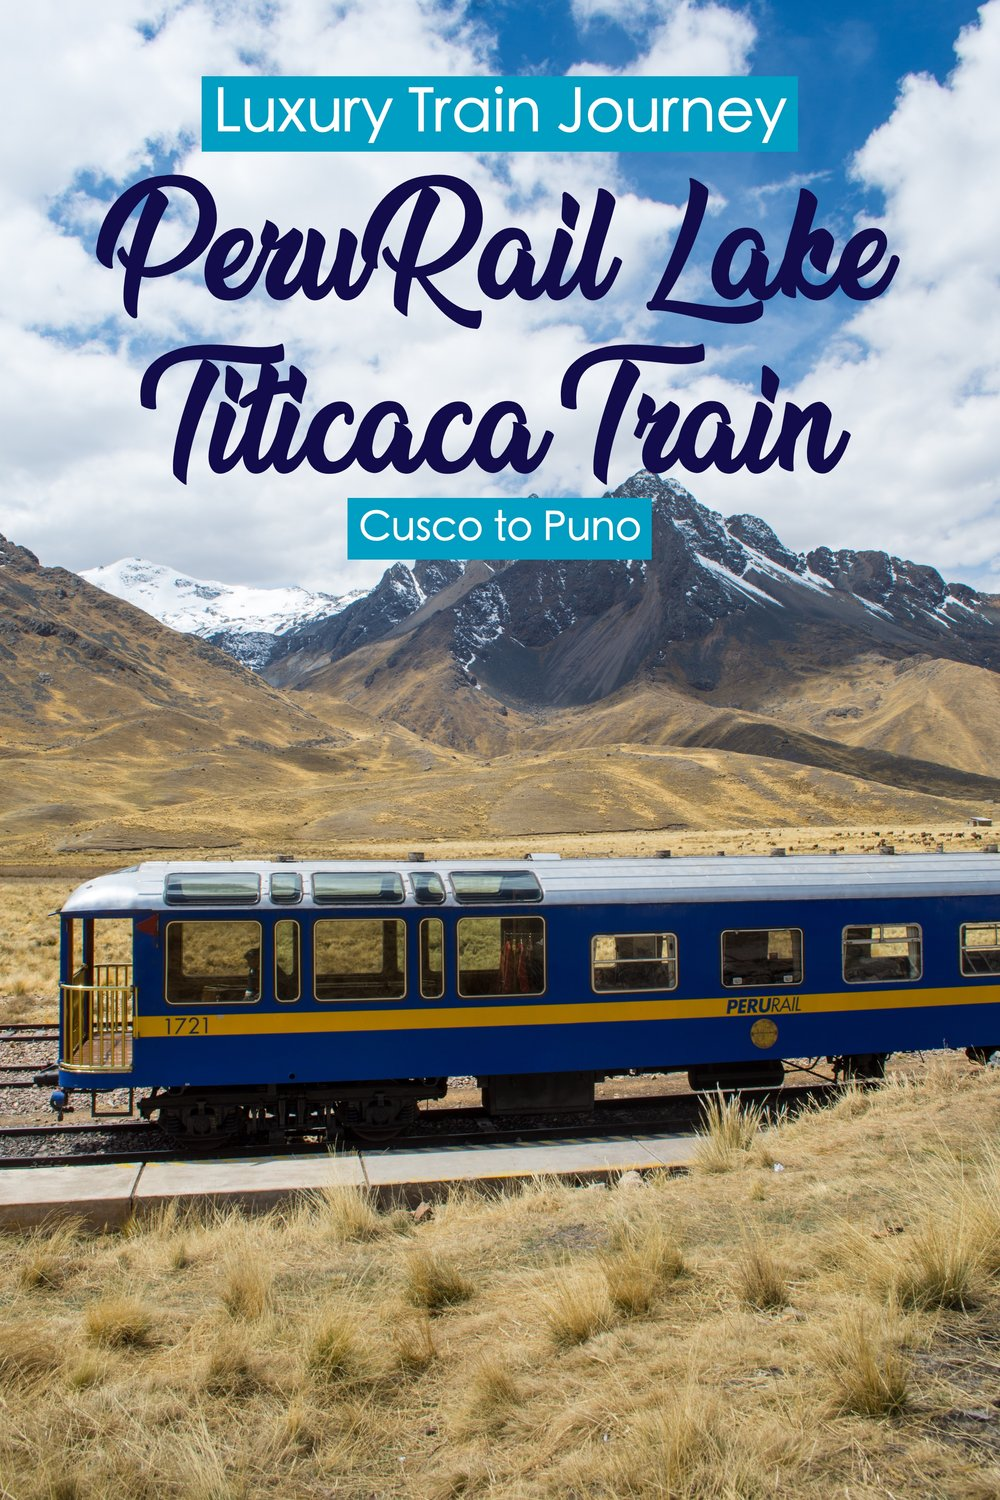 Best Luxury Train Ride in the World - Lake Titicaca Train Ride from Cusco to Puno in Peru through the Andes Mountains #Perurail #laketiticaca #peru #trainride #trains